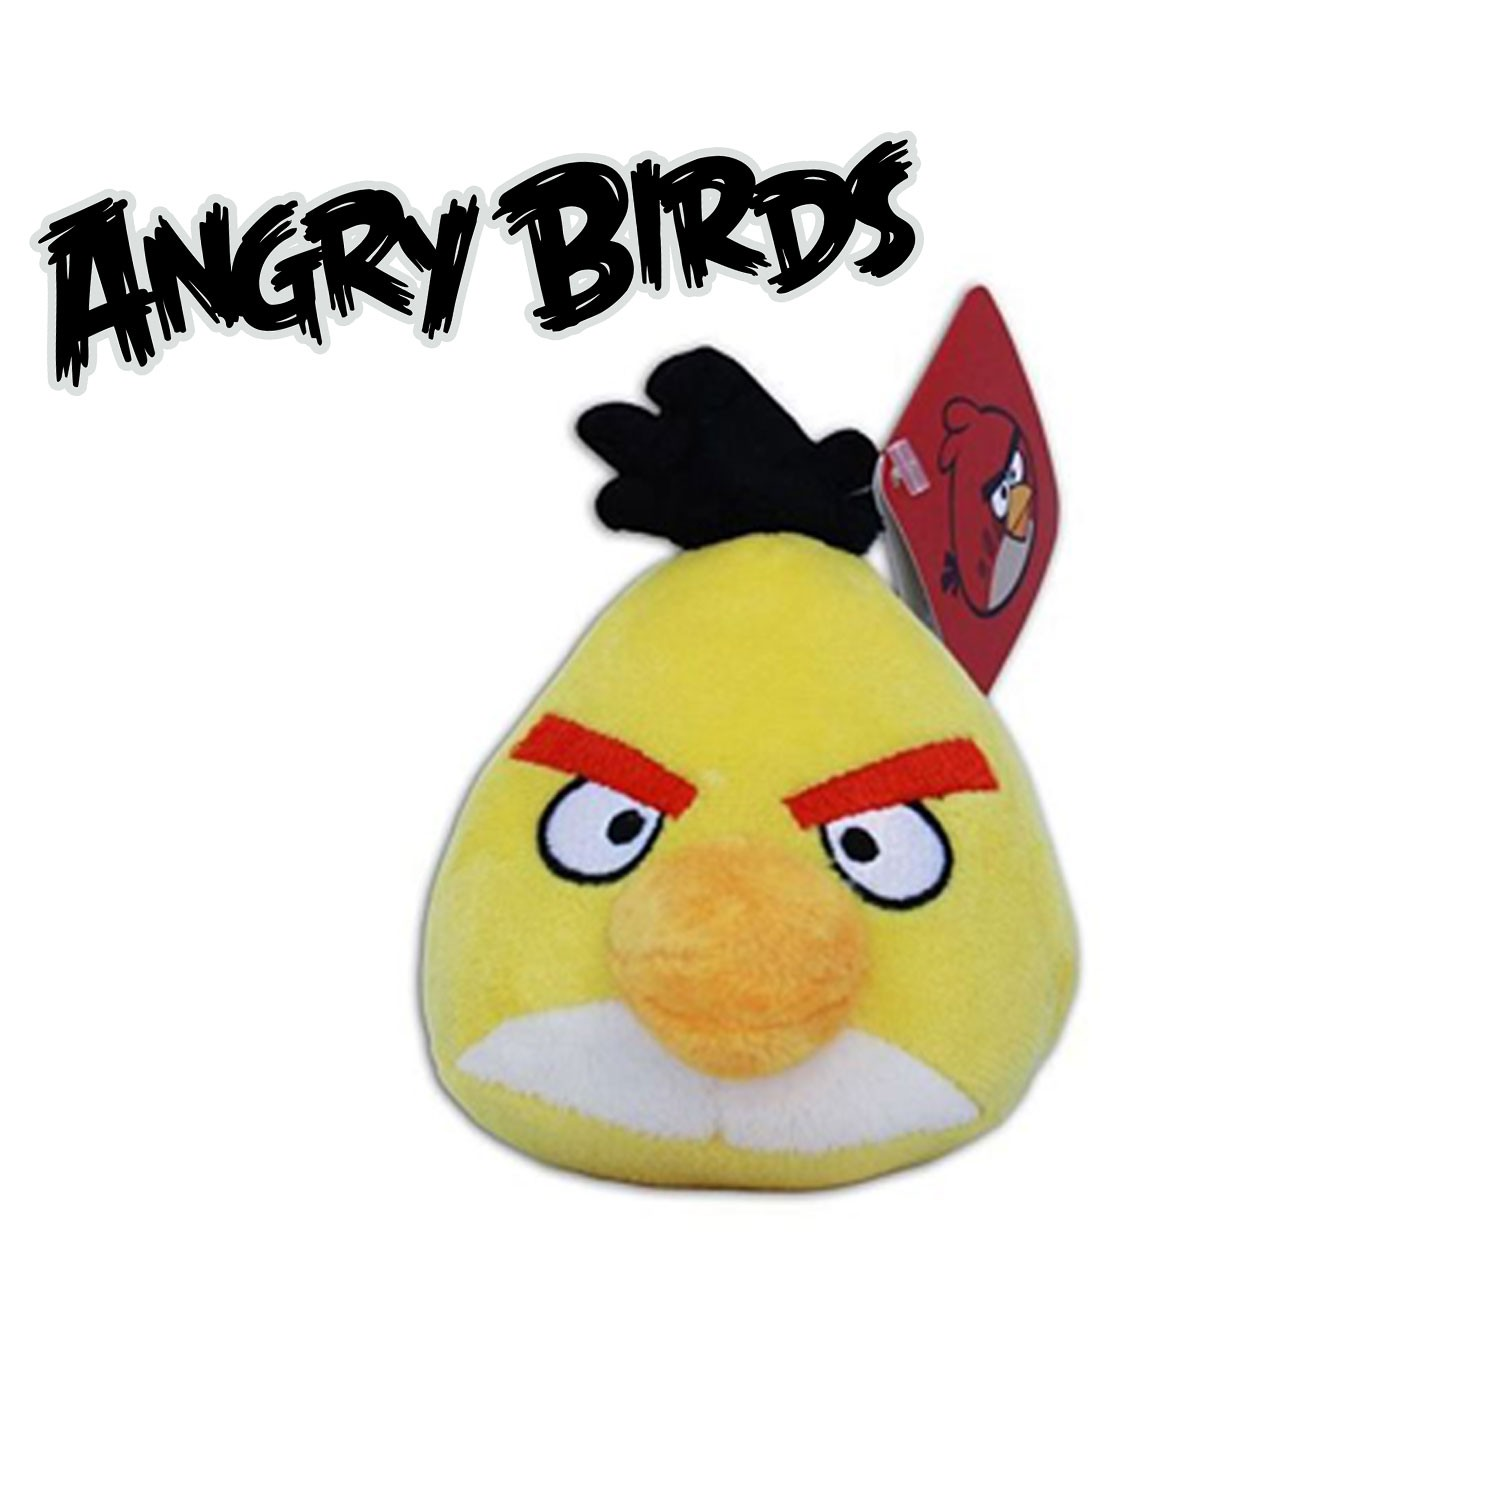 peluche angry birds videogioco 10cm originale rovio a scelta plush videogame ebay. Black Bedroom Furniture Sets. Home Design Ideas